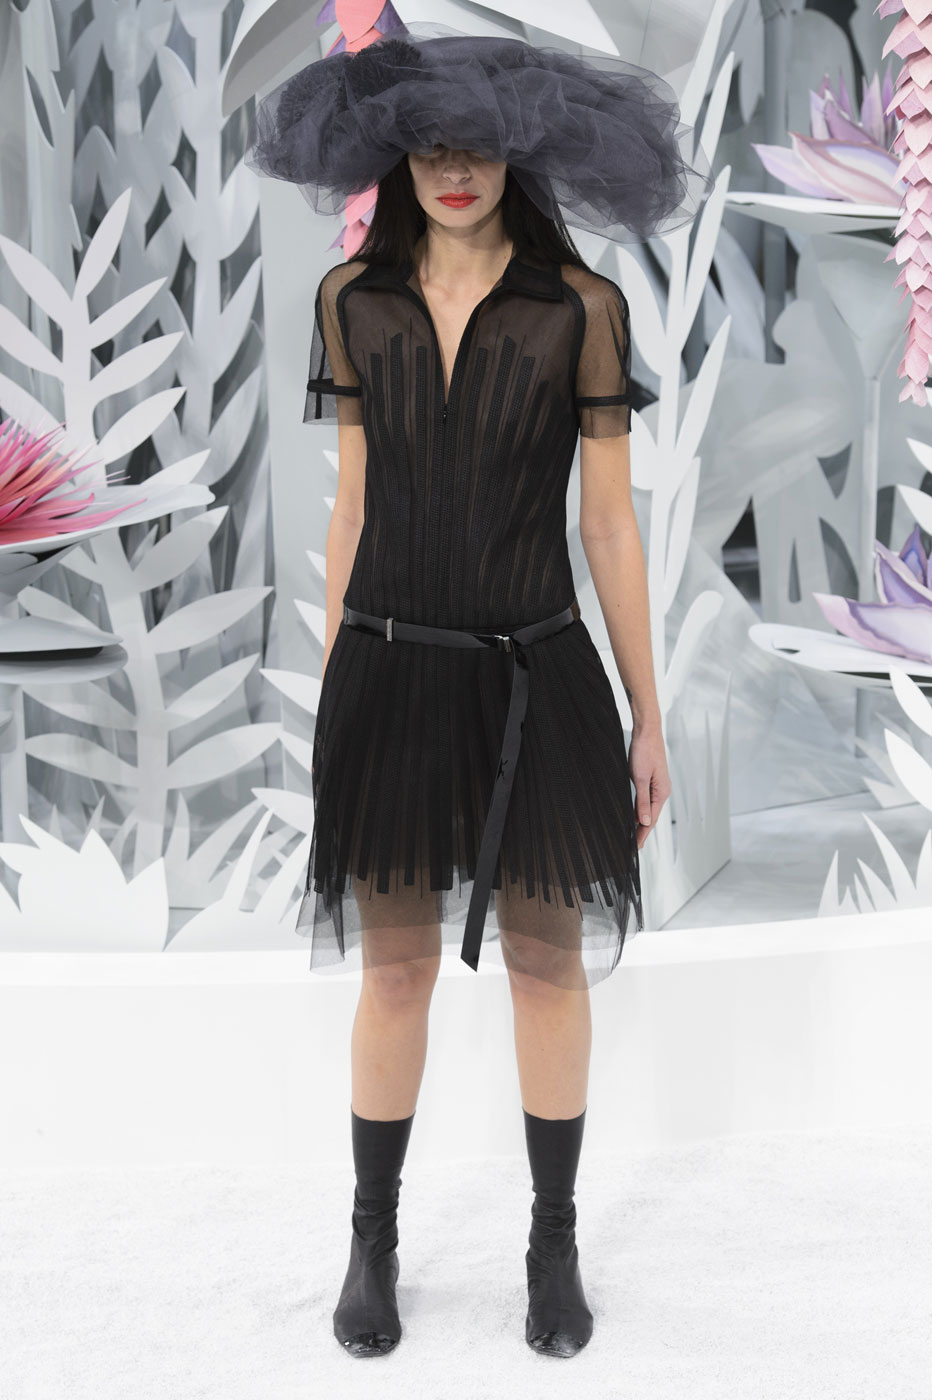 Chanel-fashion-runway-show-haute-couture-paris-spring-summer-2015-the-impression-078